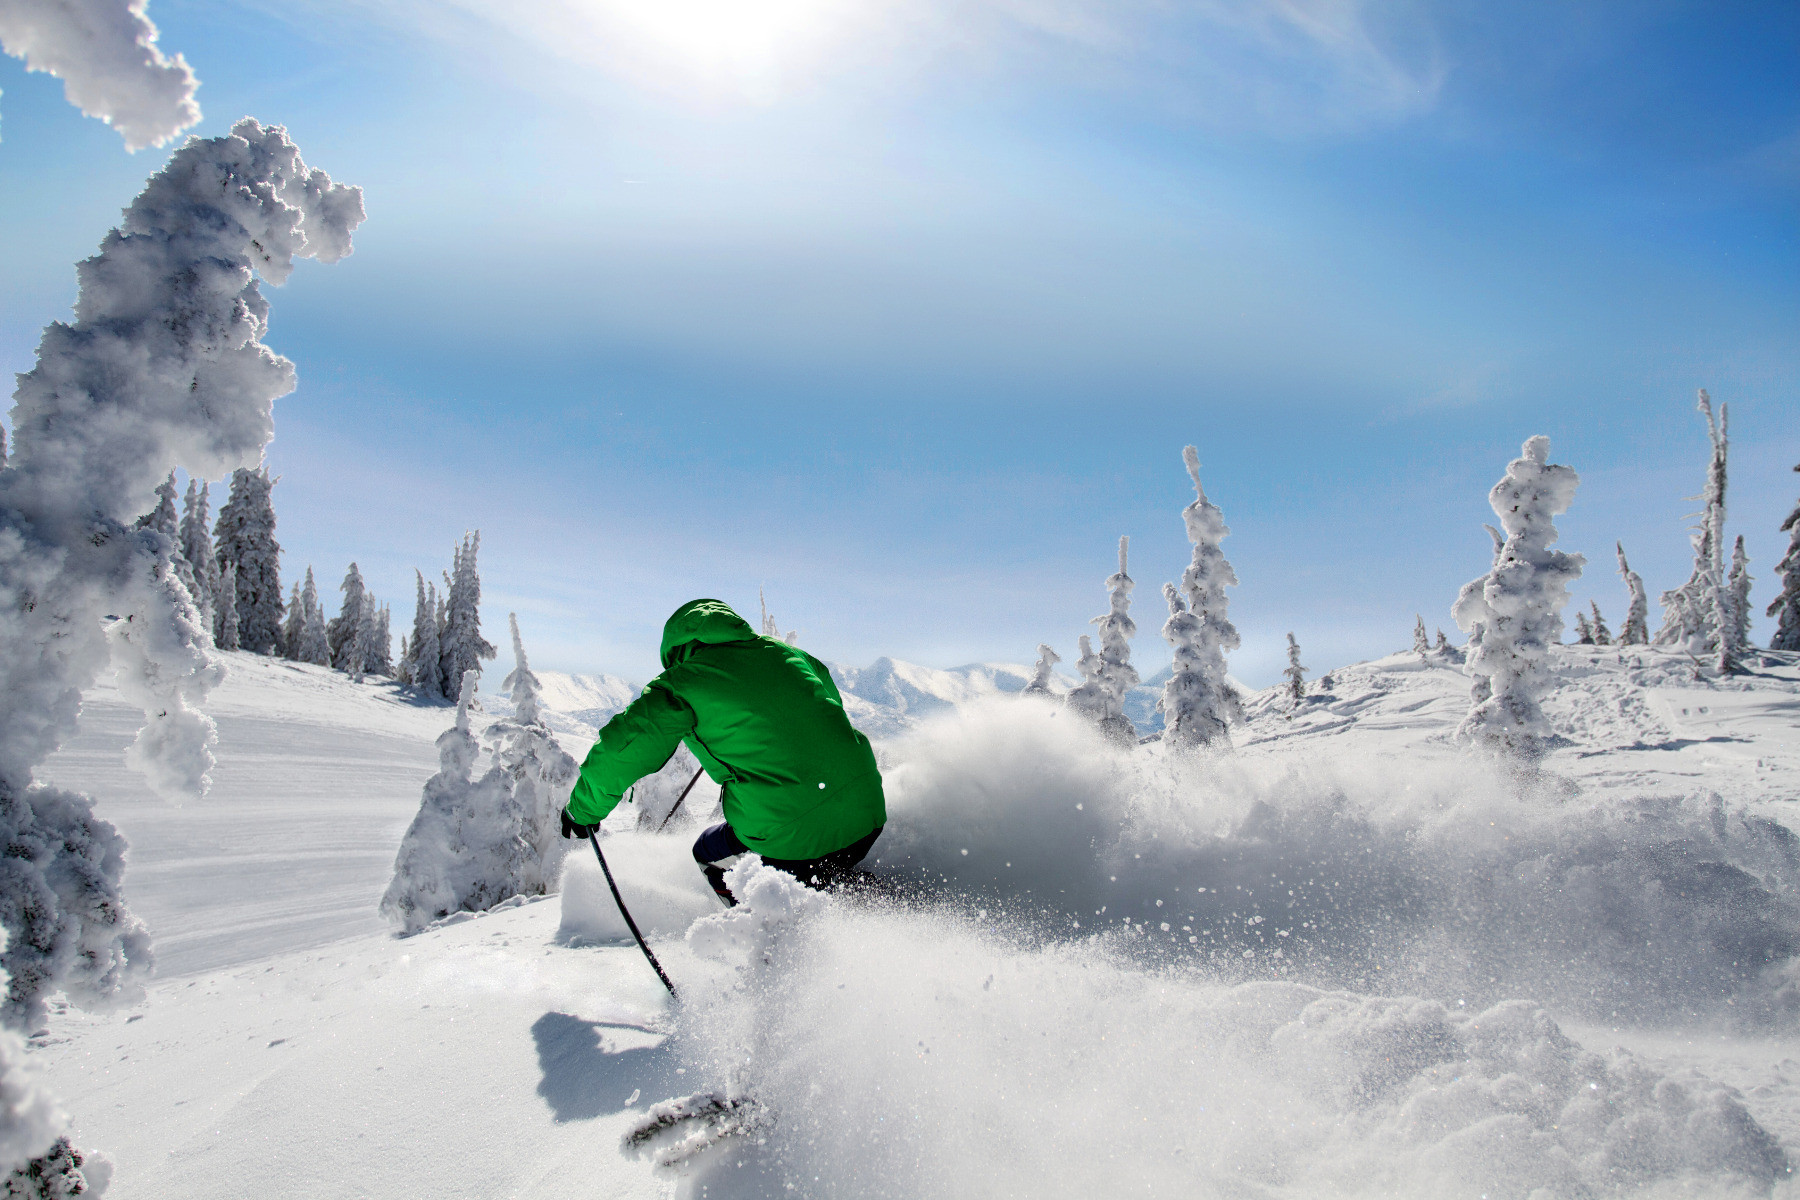 A bluebird powder day at Silver Star. Photo by Rowan Thornton, courtesy of Silver Star Mountain Resort.undefined